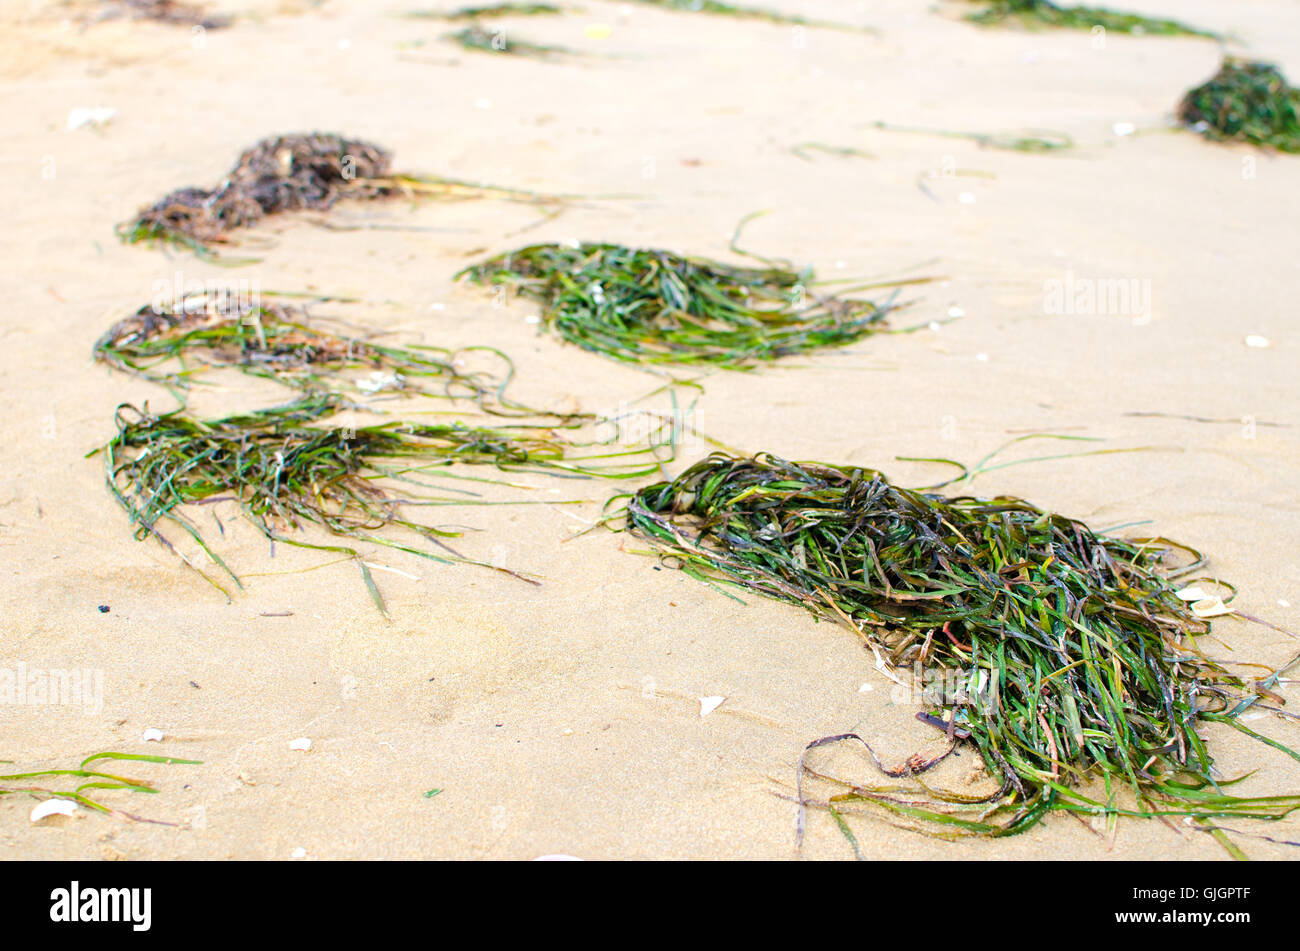 seaweed on the beach - Stock Image